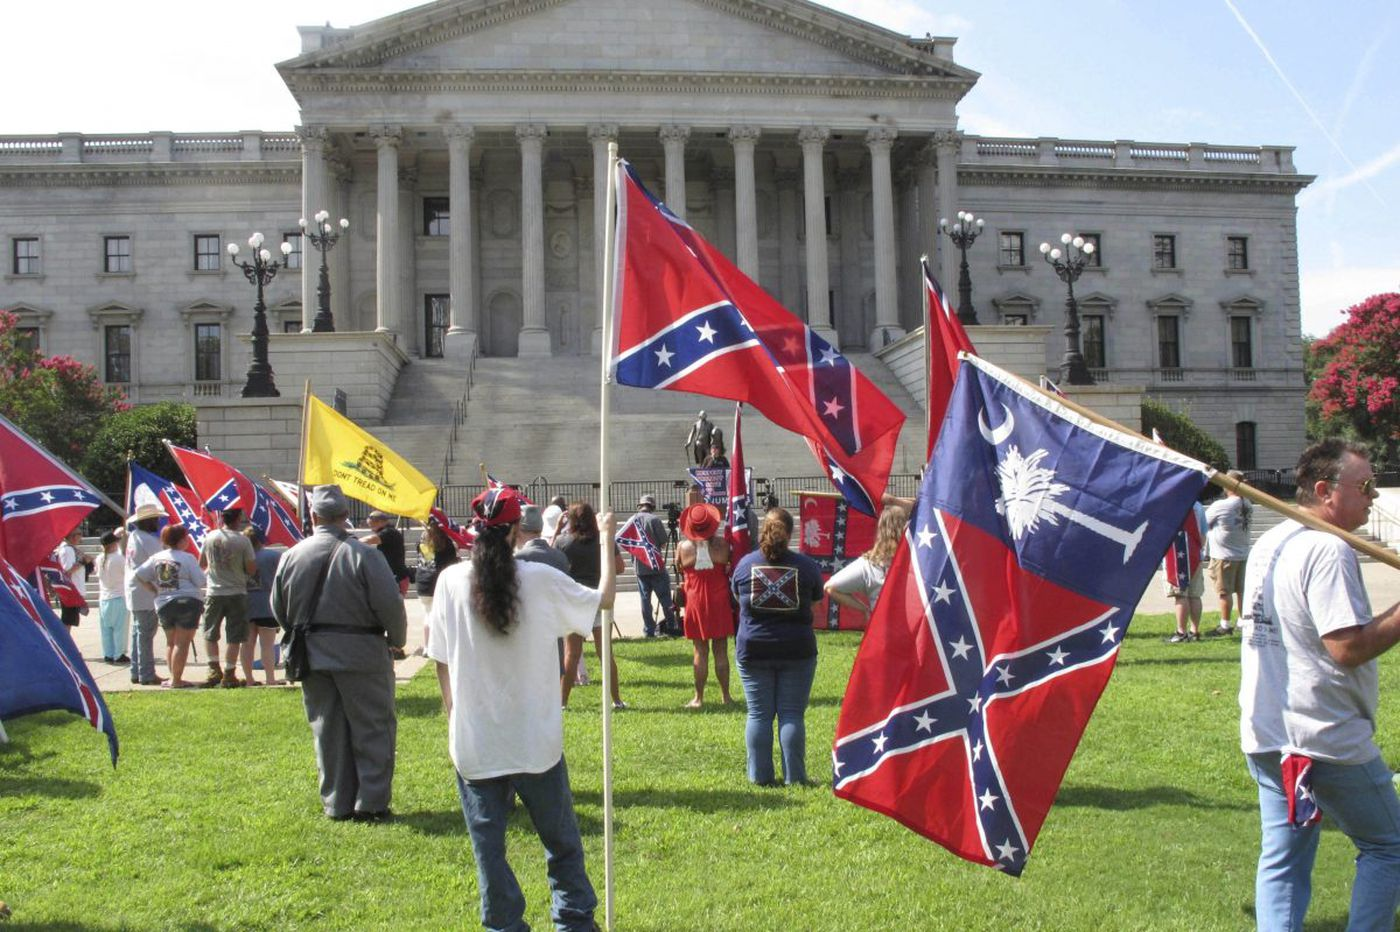 Judge orders pro-Confederacy group to disband or pay $3M